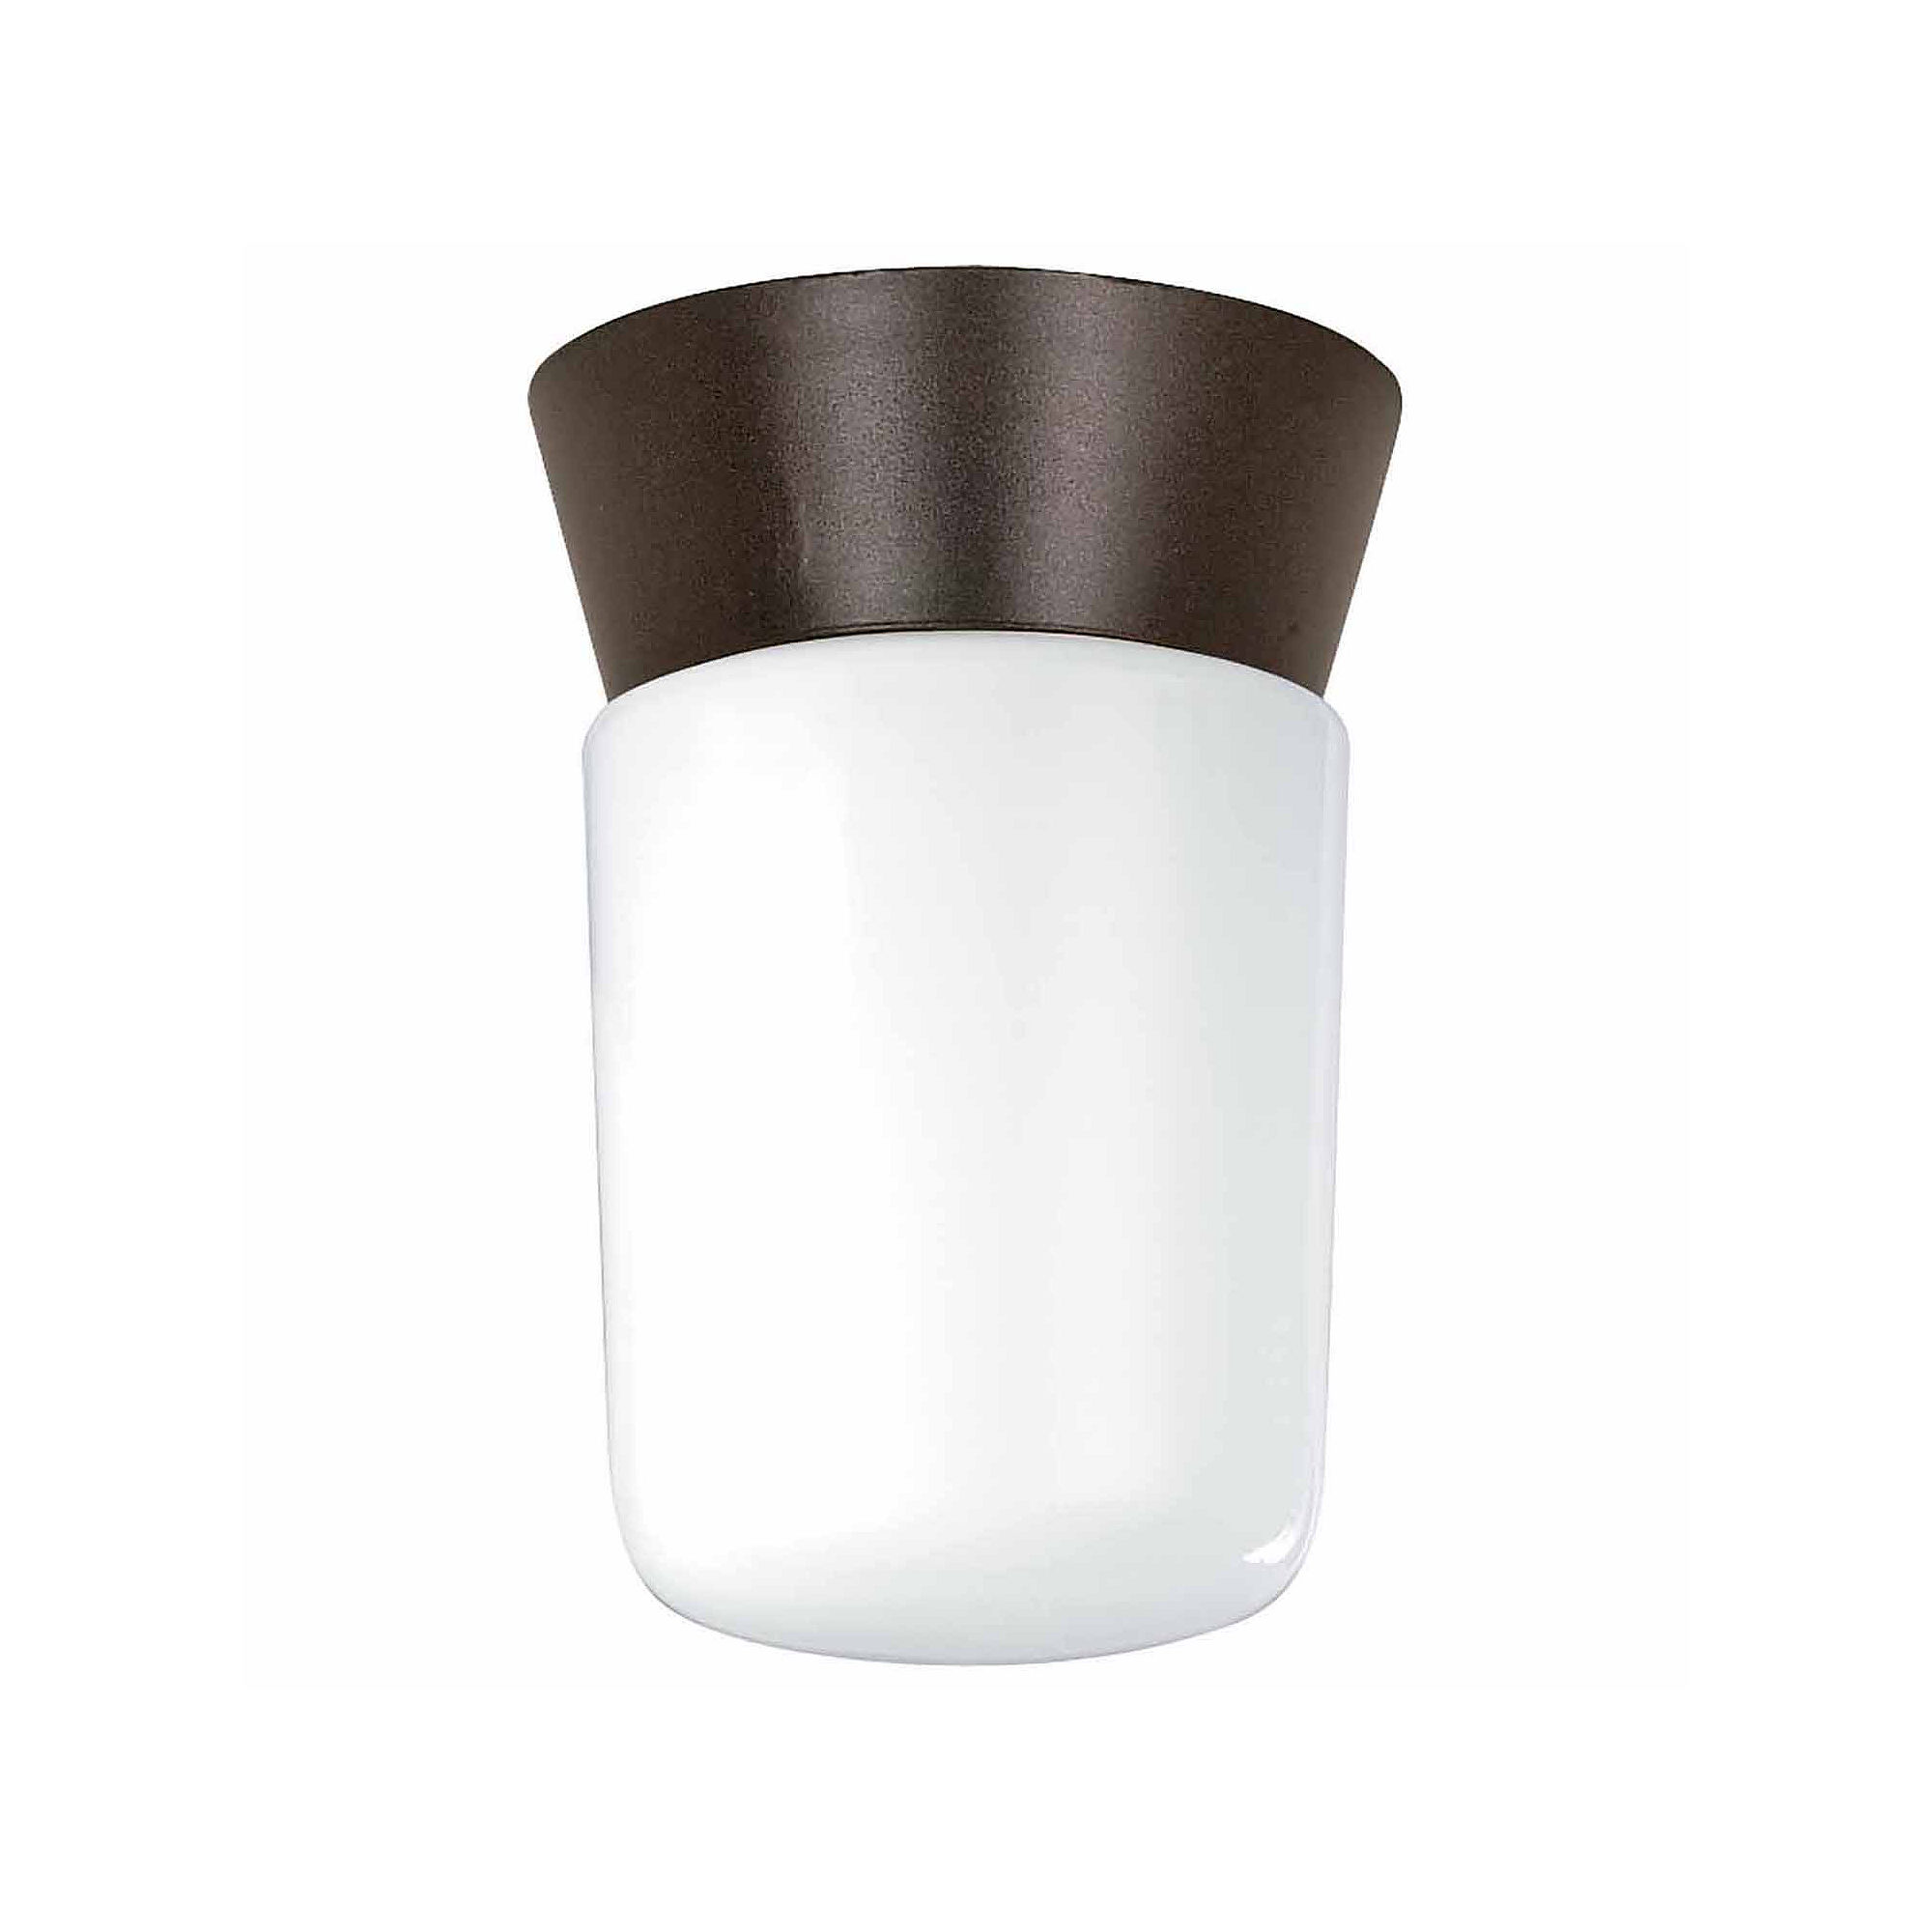 Filament Design 1-Light Black Outdoor Flush Mount